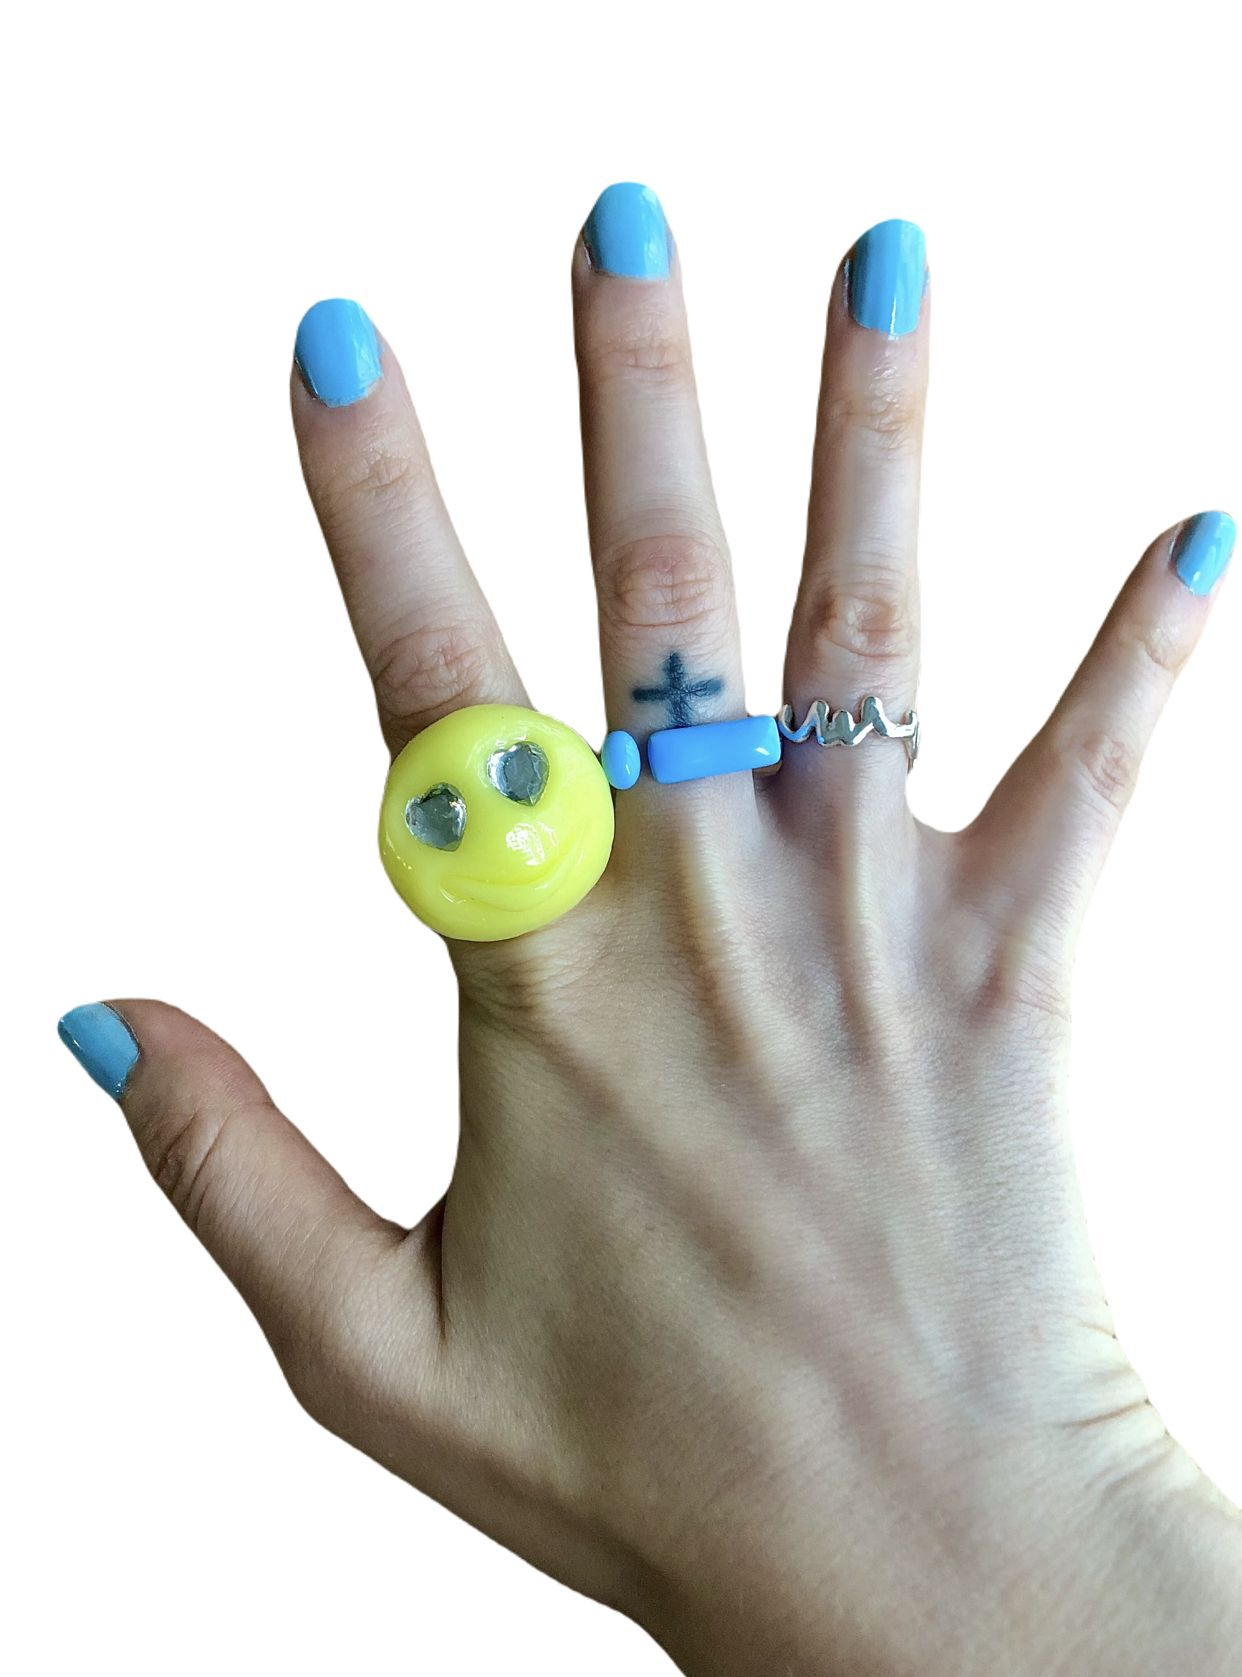 The Smiley Ring